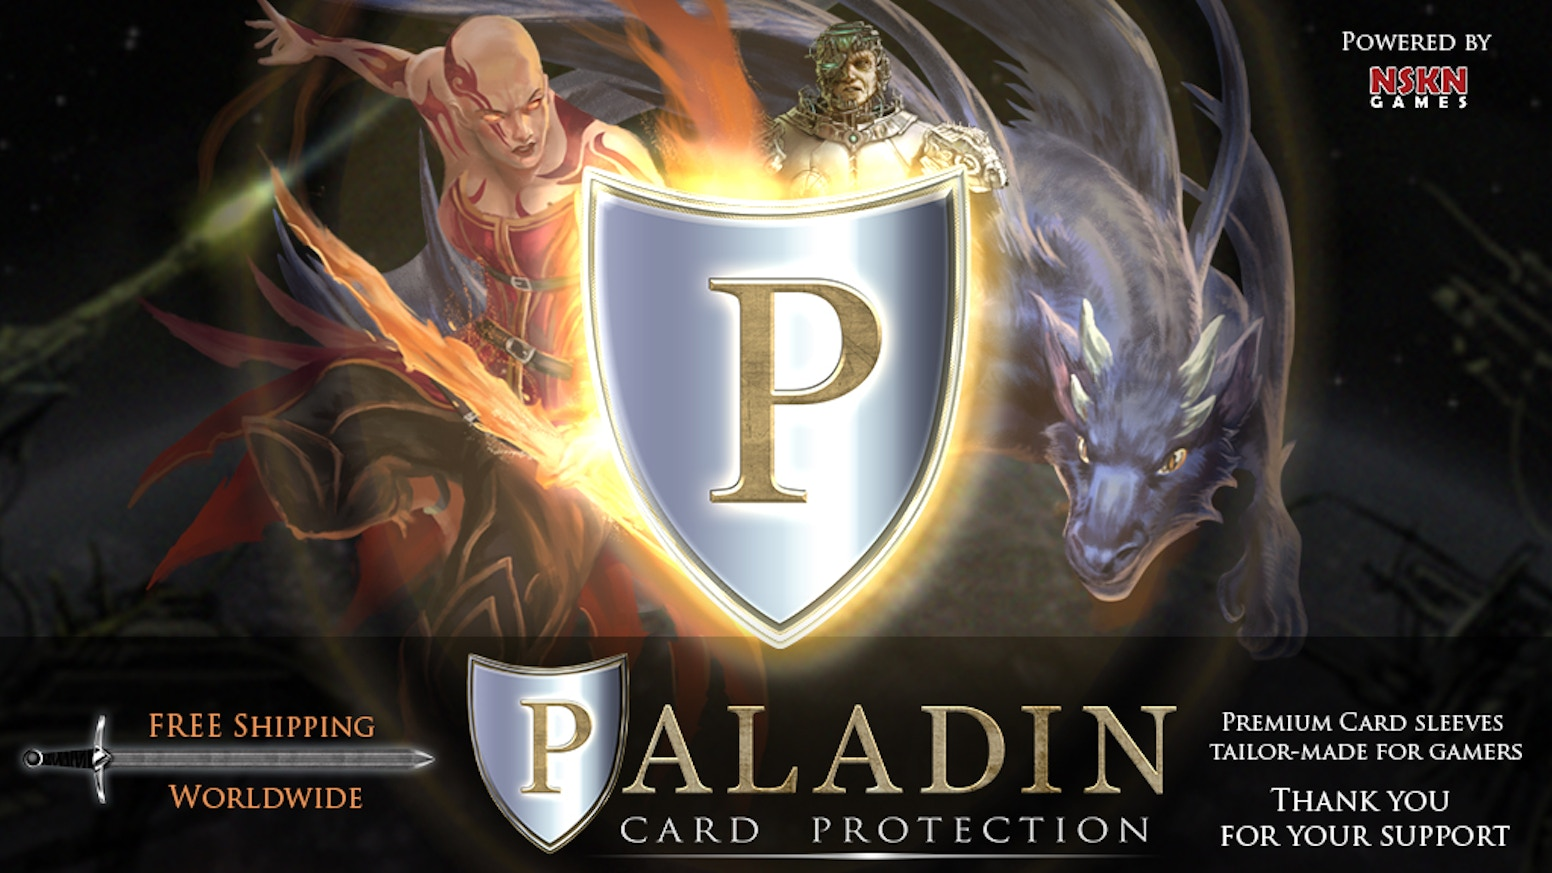 By Gamers for Gamers: the top quality card protection for your games, at the very best prices and with free shipping worldwide!